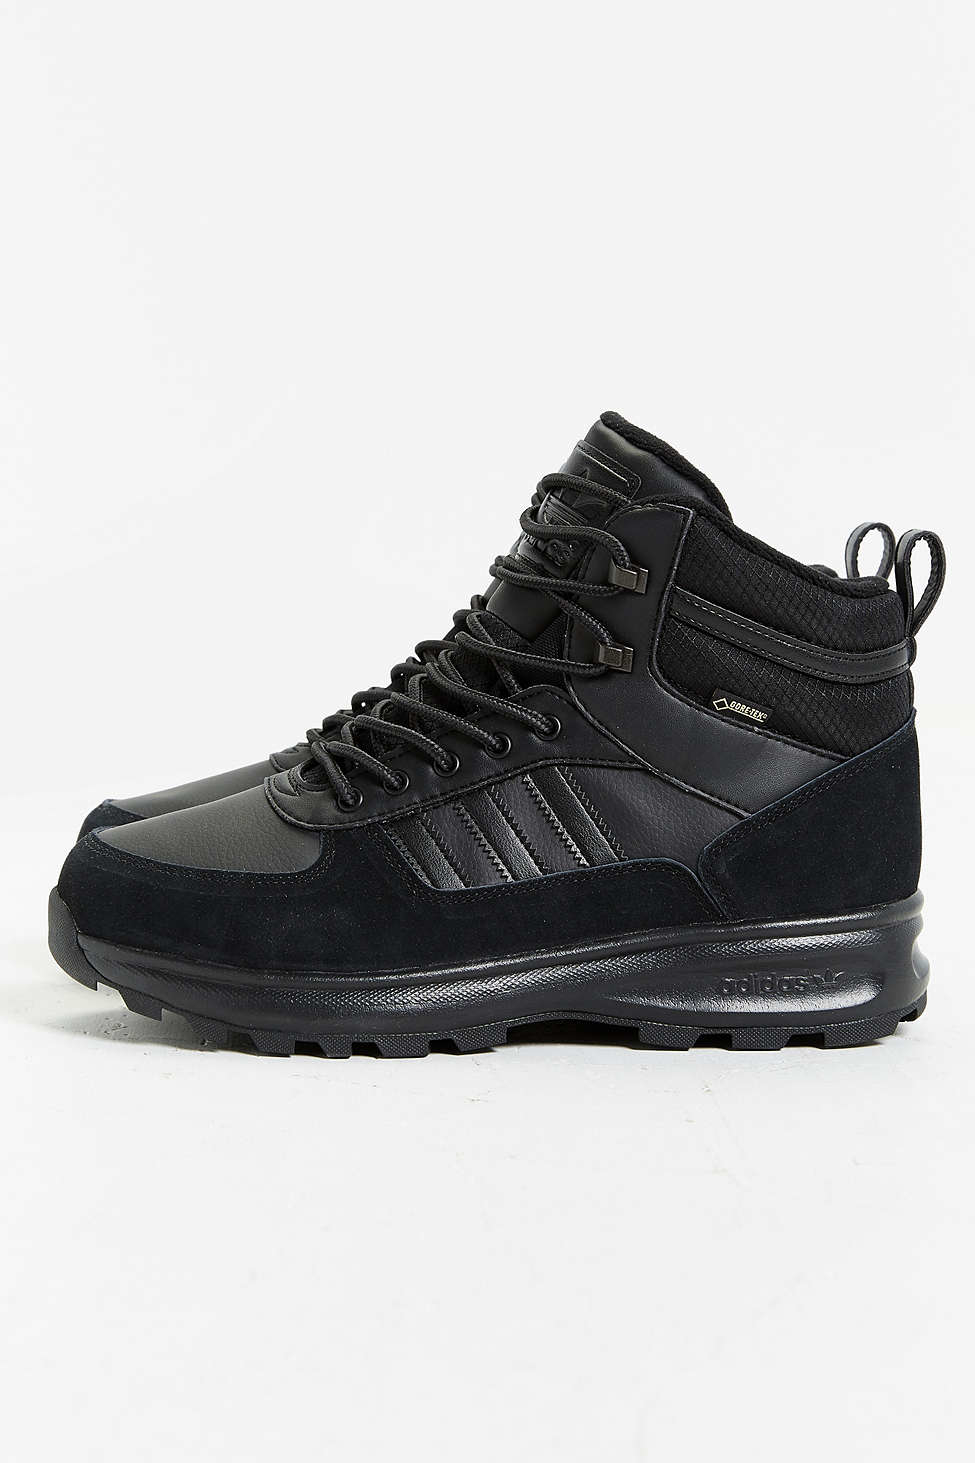 new product d6dae 848e7 Lyst - adidas Originals Chasker Gtx Boot in Black for Men